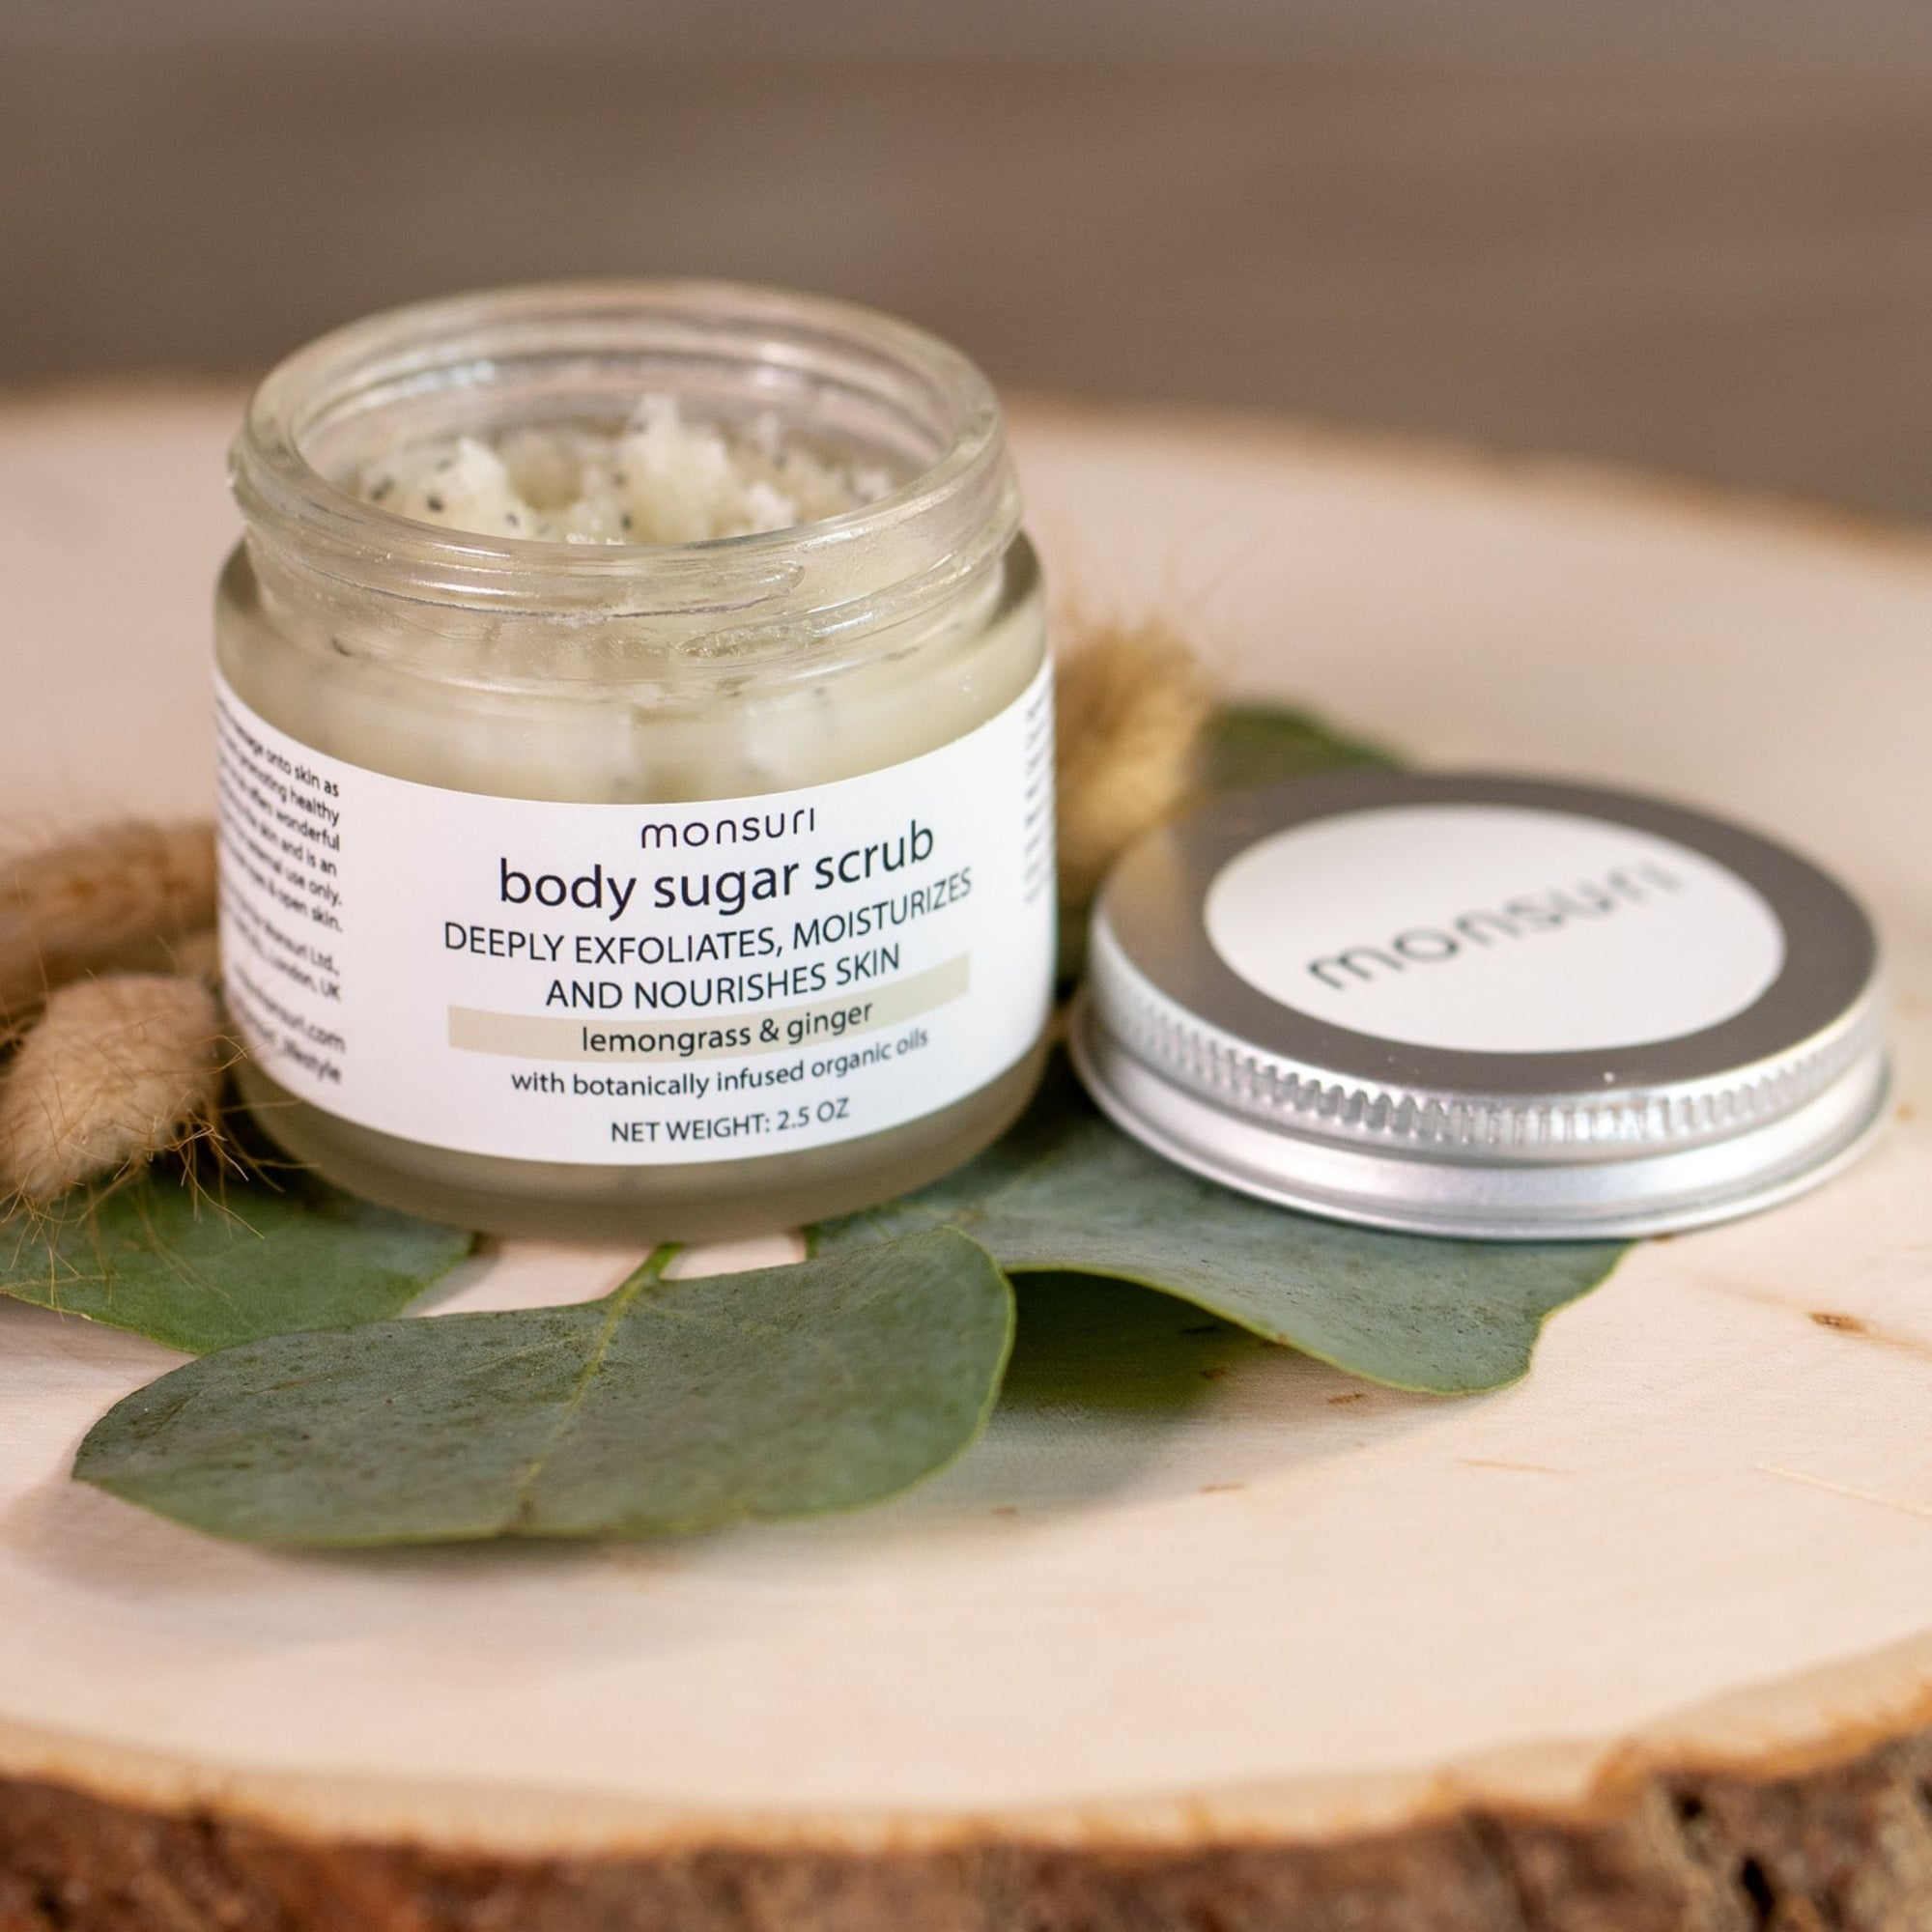 Lemongrass & Ginger Organic Sugar Scrub for Body to Exfoliate, Moisturize and for Healthy Skin. Self-Care Gifts for Women and Beauty Product for Mom